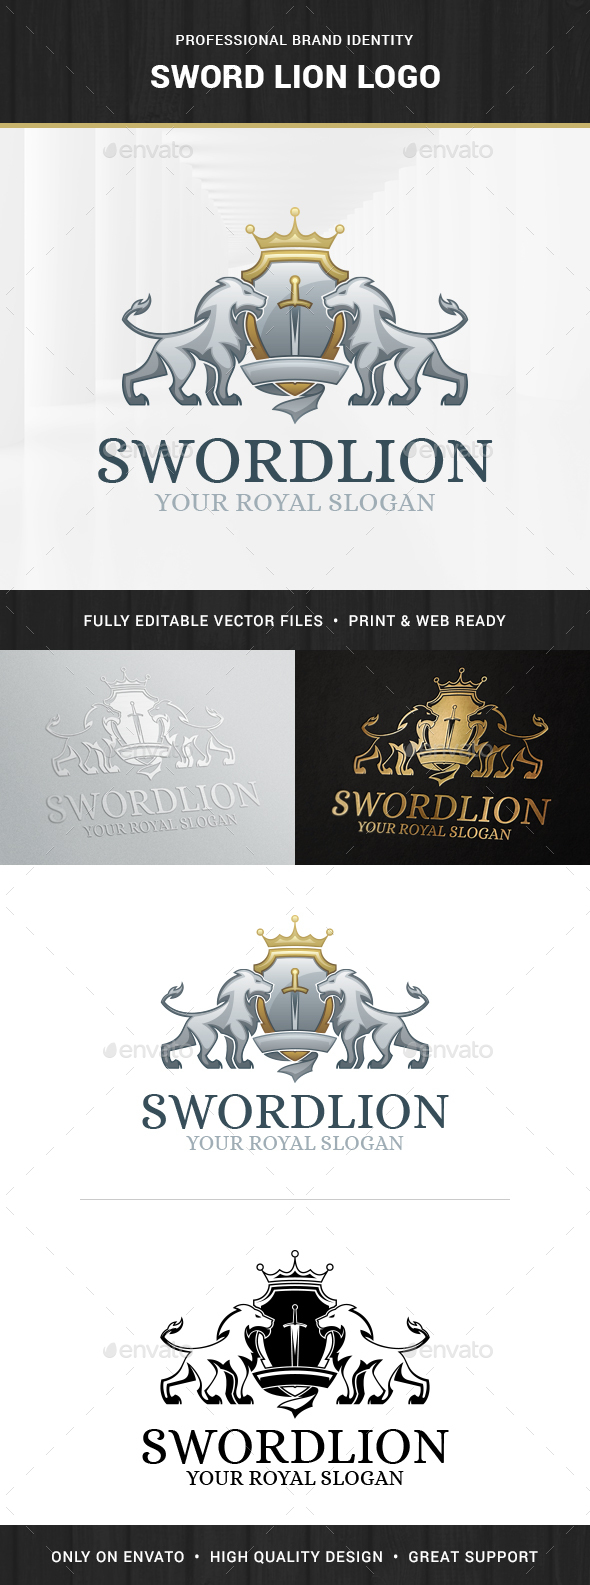 Sword Lion Logo Template